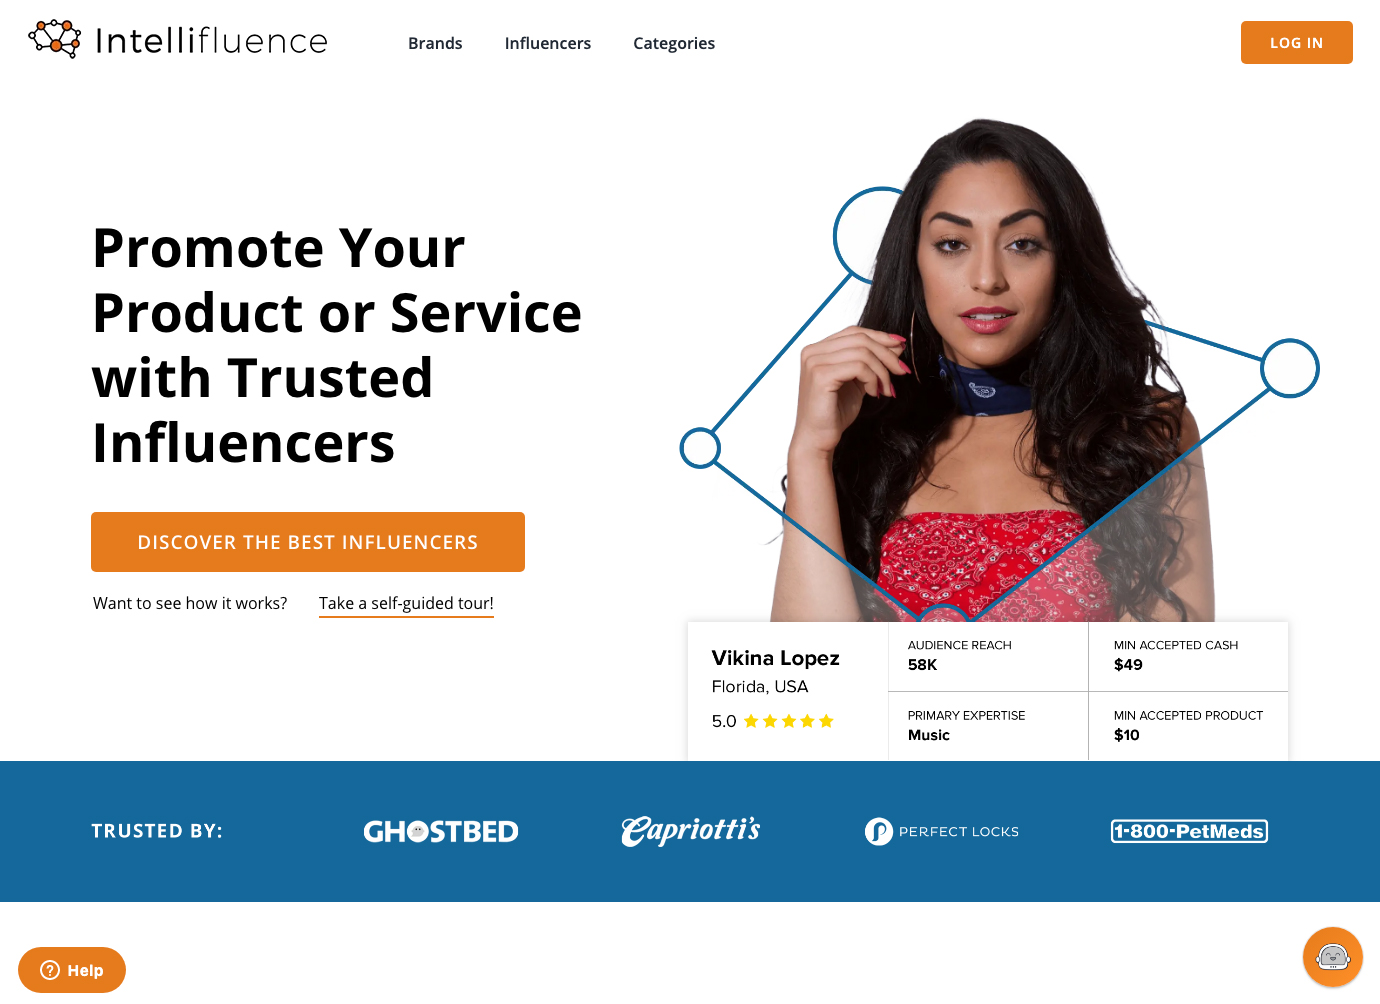 Promote Your Product or Service with Trusted Influencers